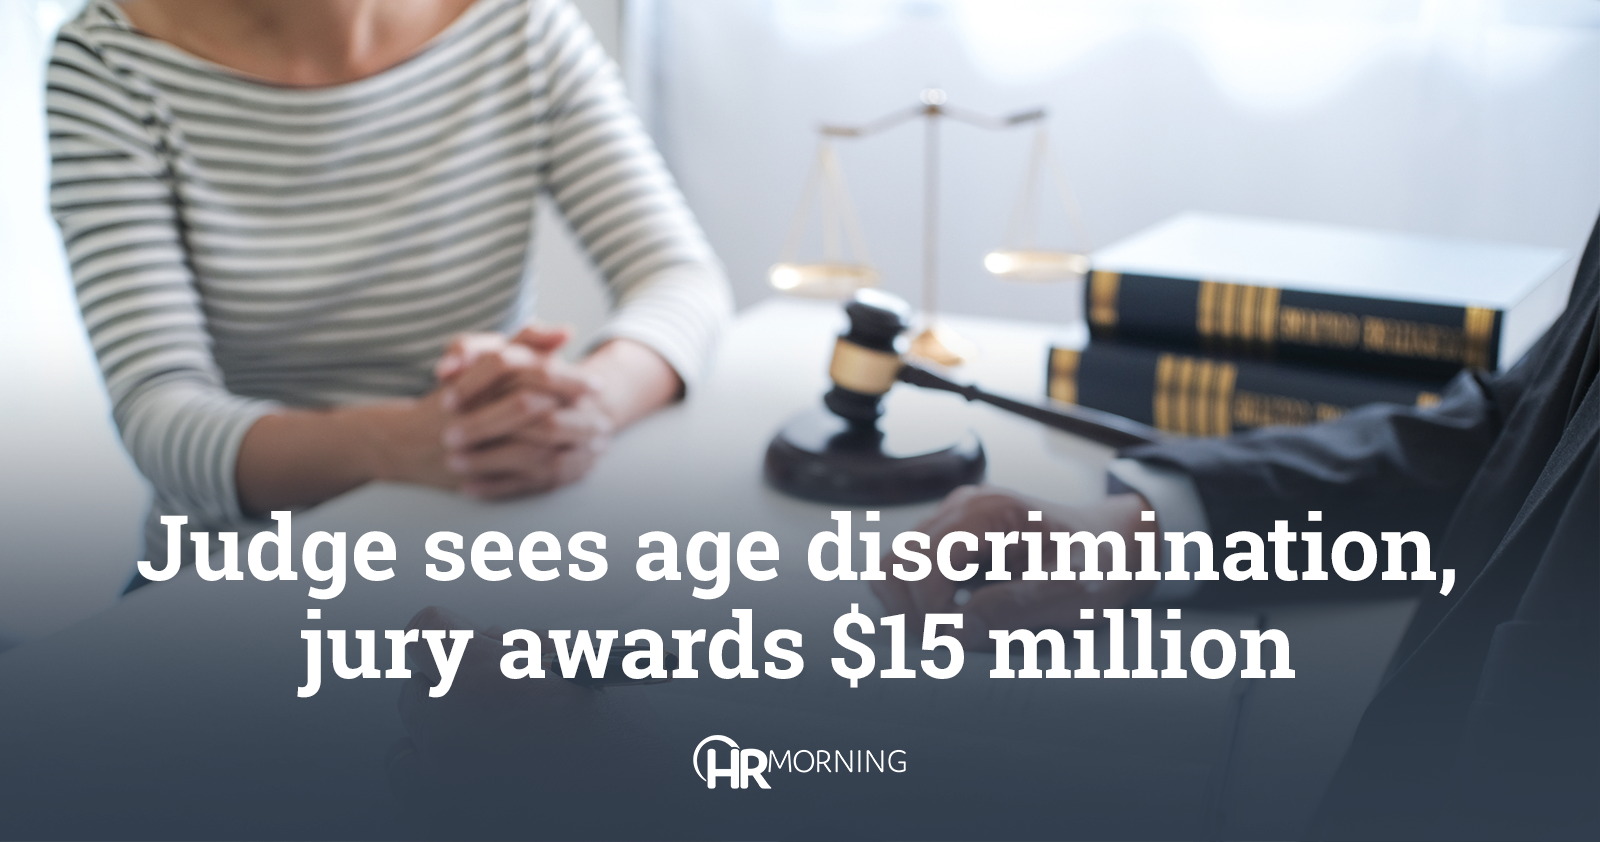 Judge sees age discrimination, jury awards $15 million